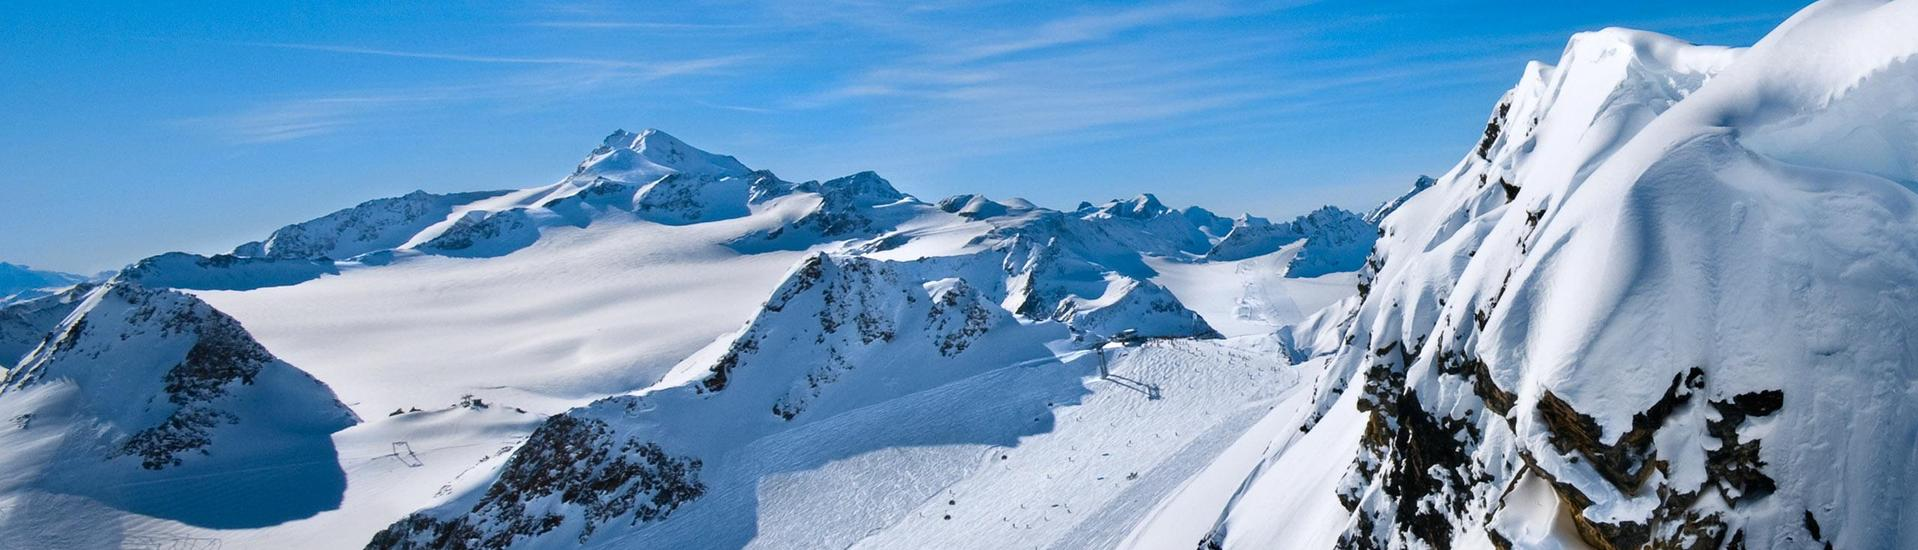 A view of a snowy mountain top in the ski resort of Valfréjus, where ski schools gather to start their ski lessons.